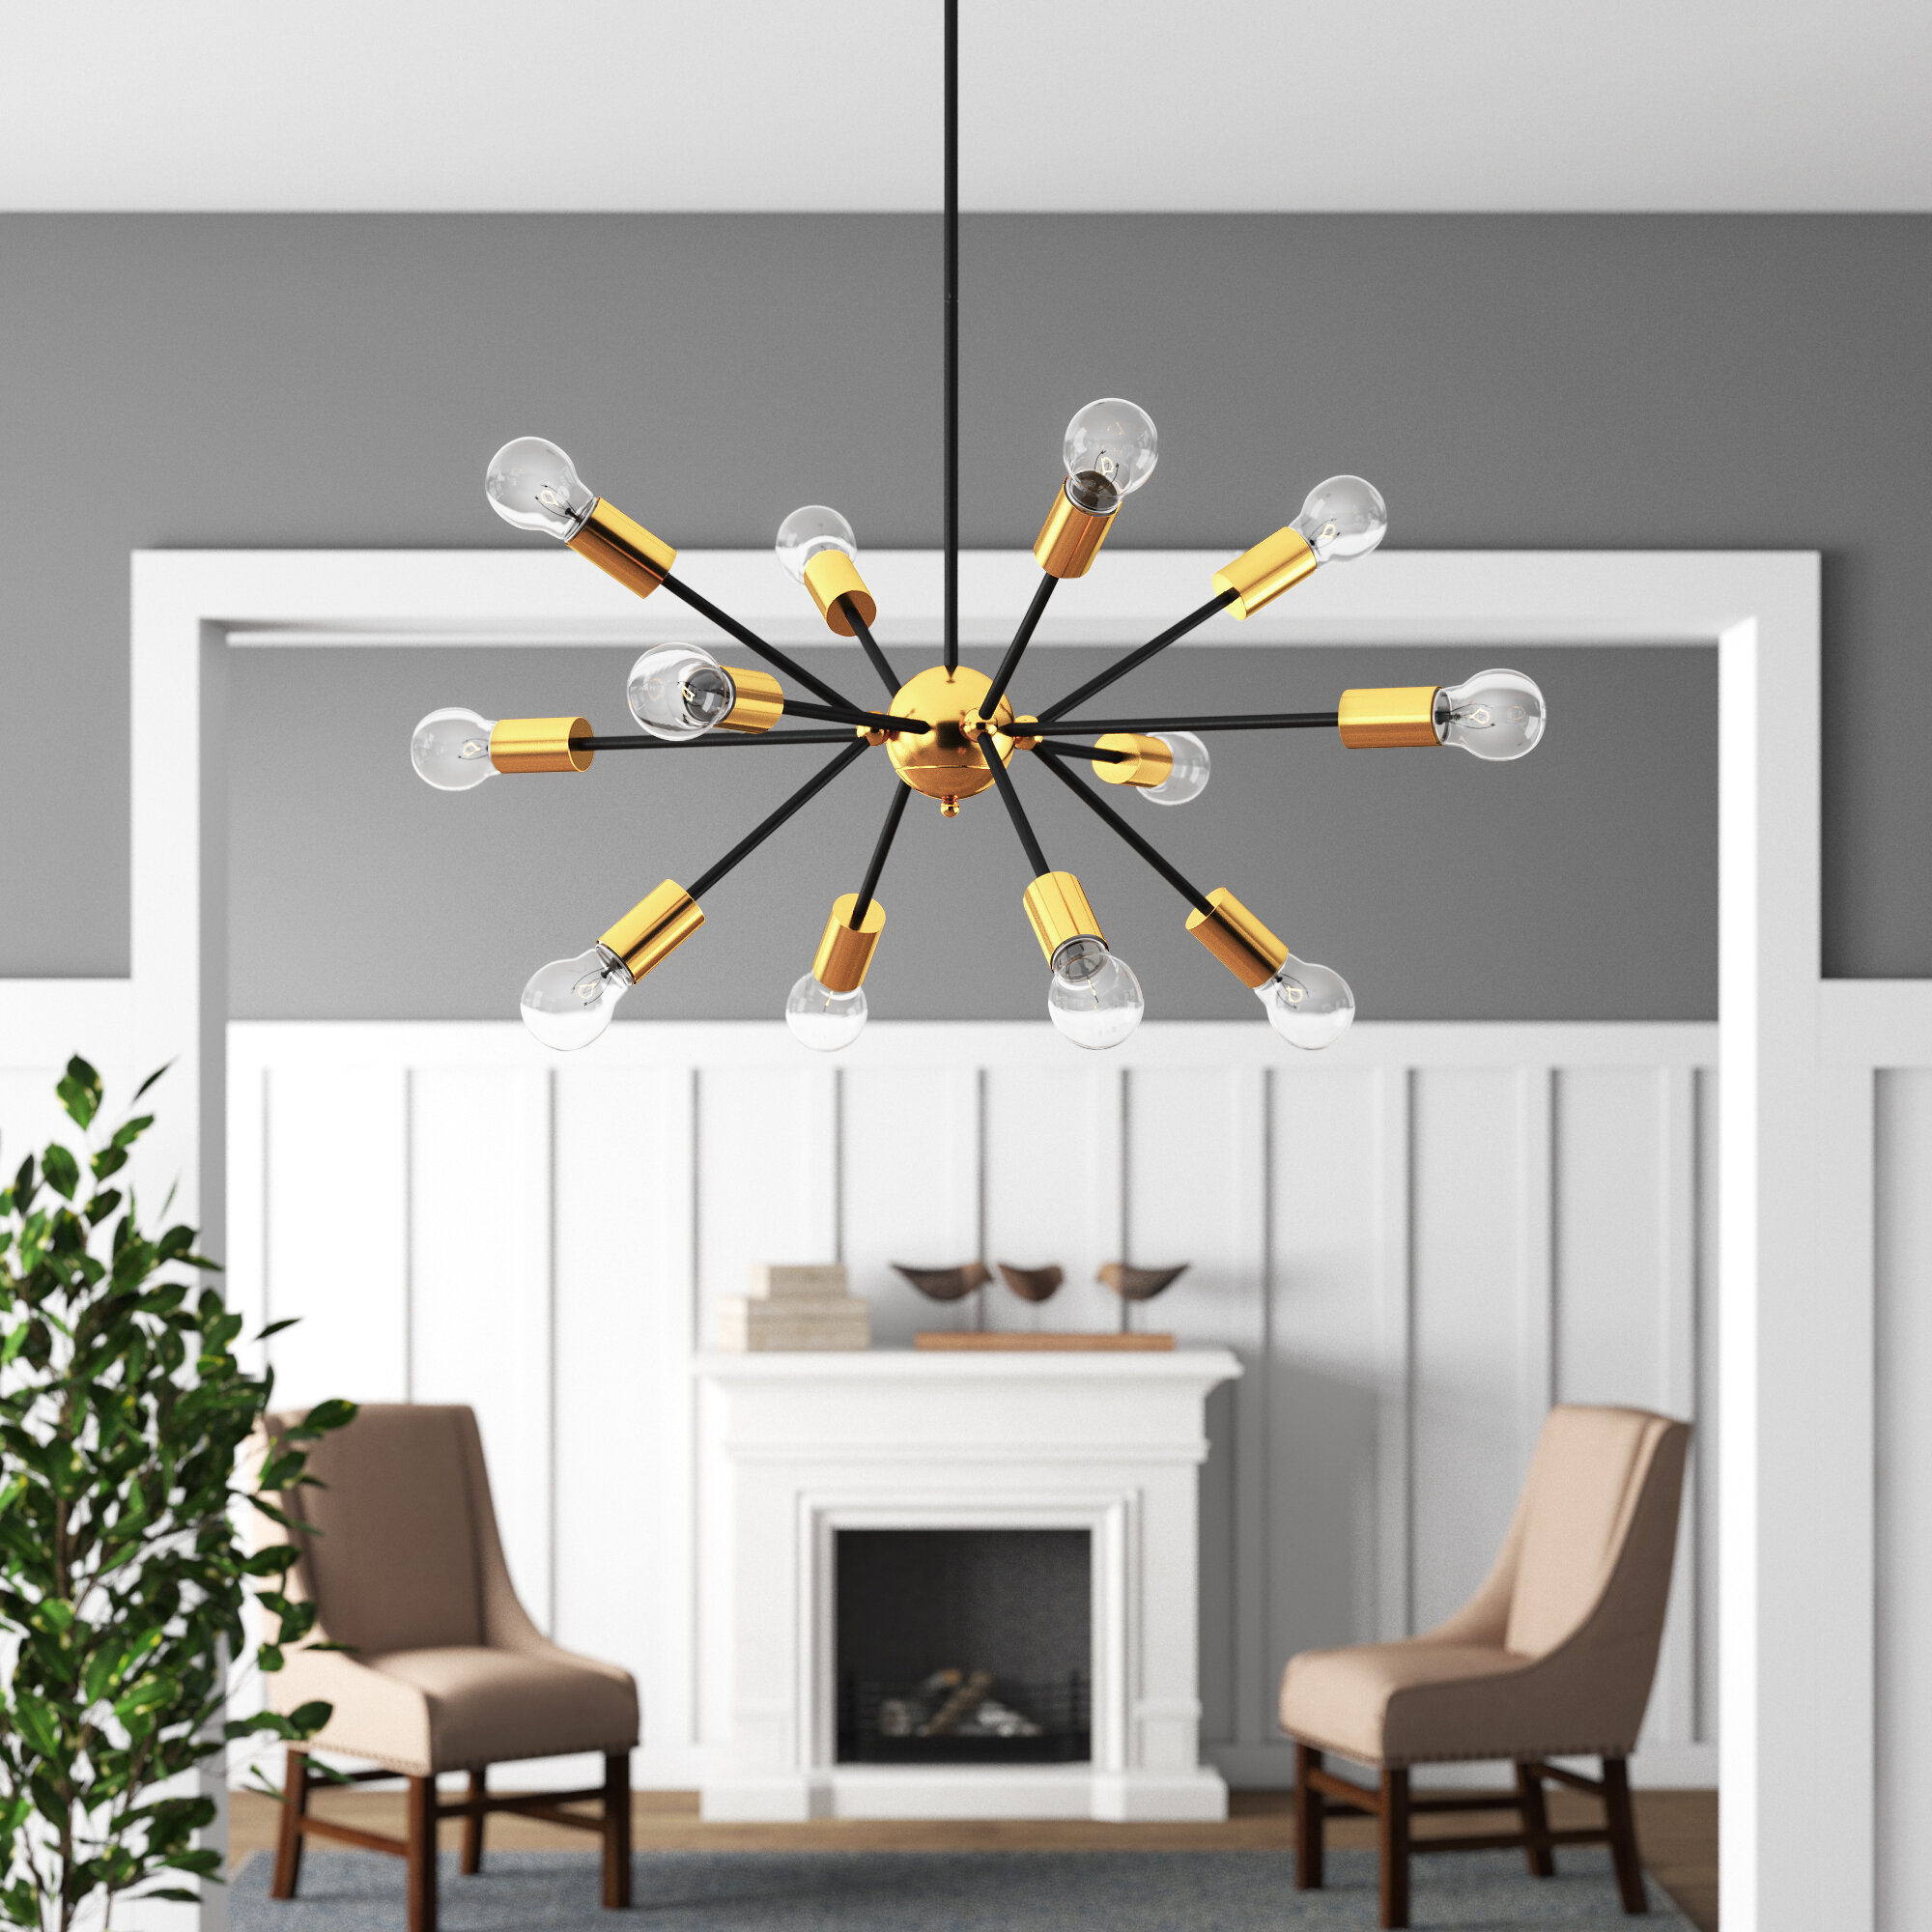 Dorcia 12 Light Sputnik Chandelier Regarding Vroman 12 Light Sputnik Chandeliers (View 5 of 30)